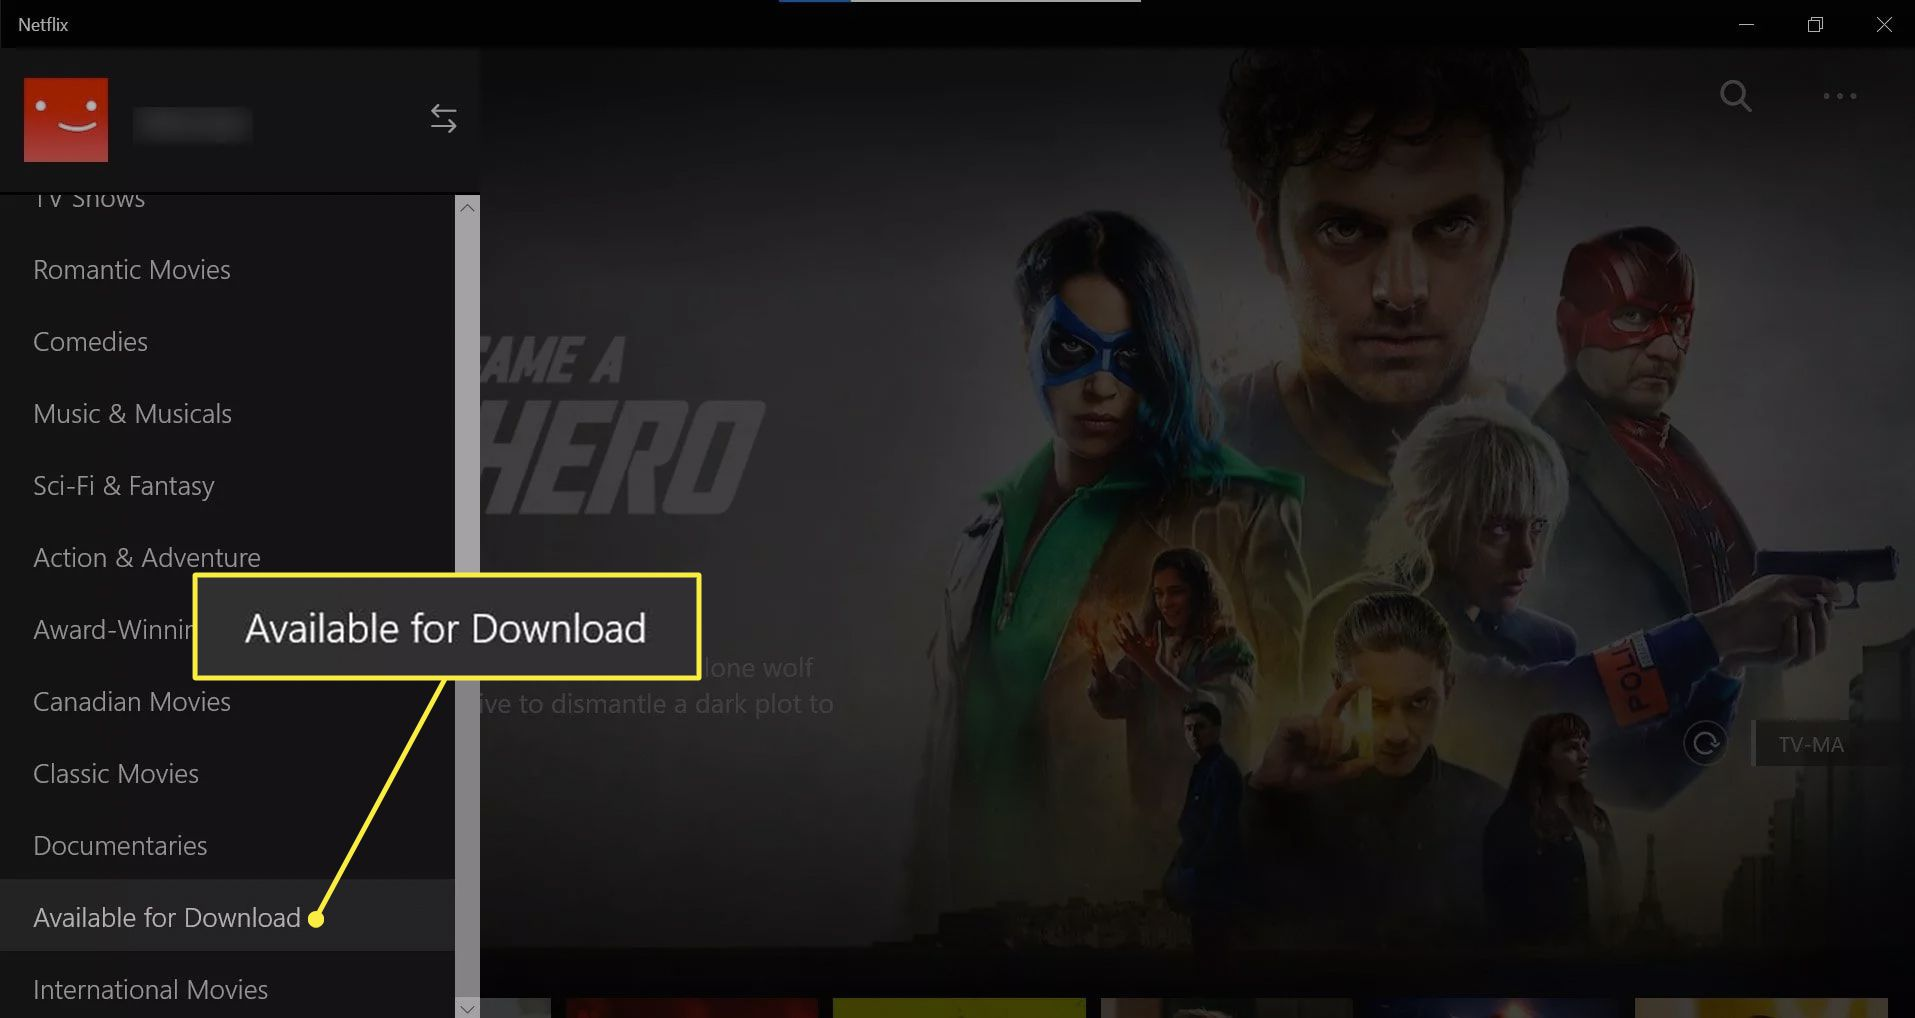 Available for Download option in Netflix Windows app.